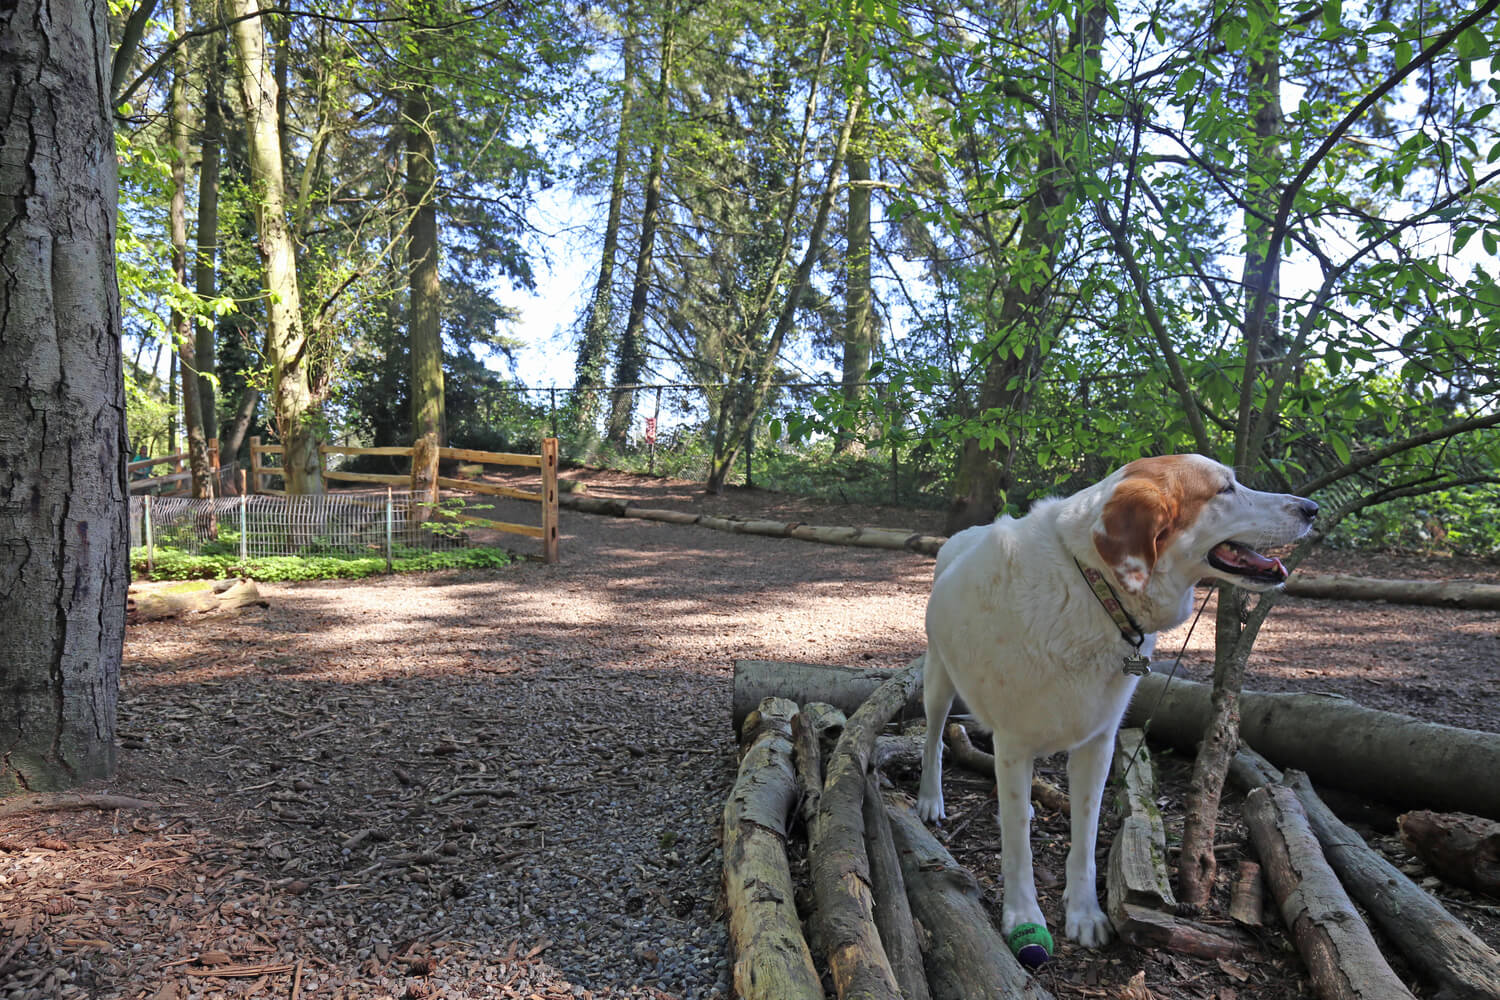 A white and brown dog stands on top of a pile of branches in a heavily wooded park